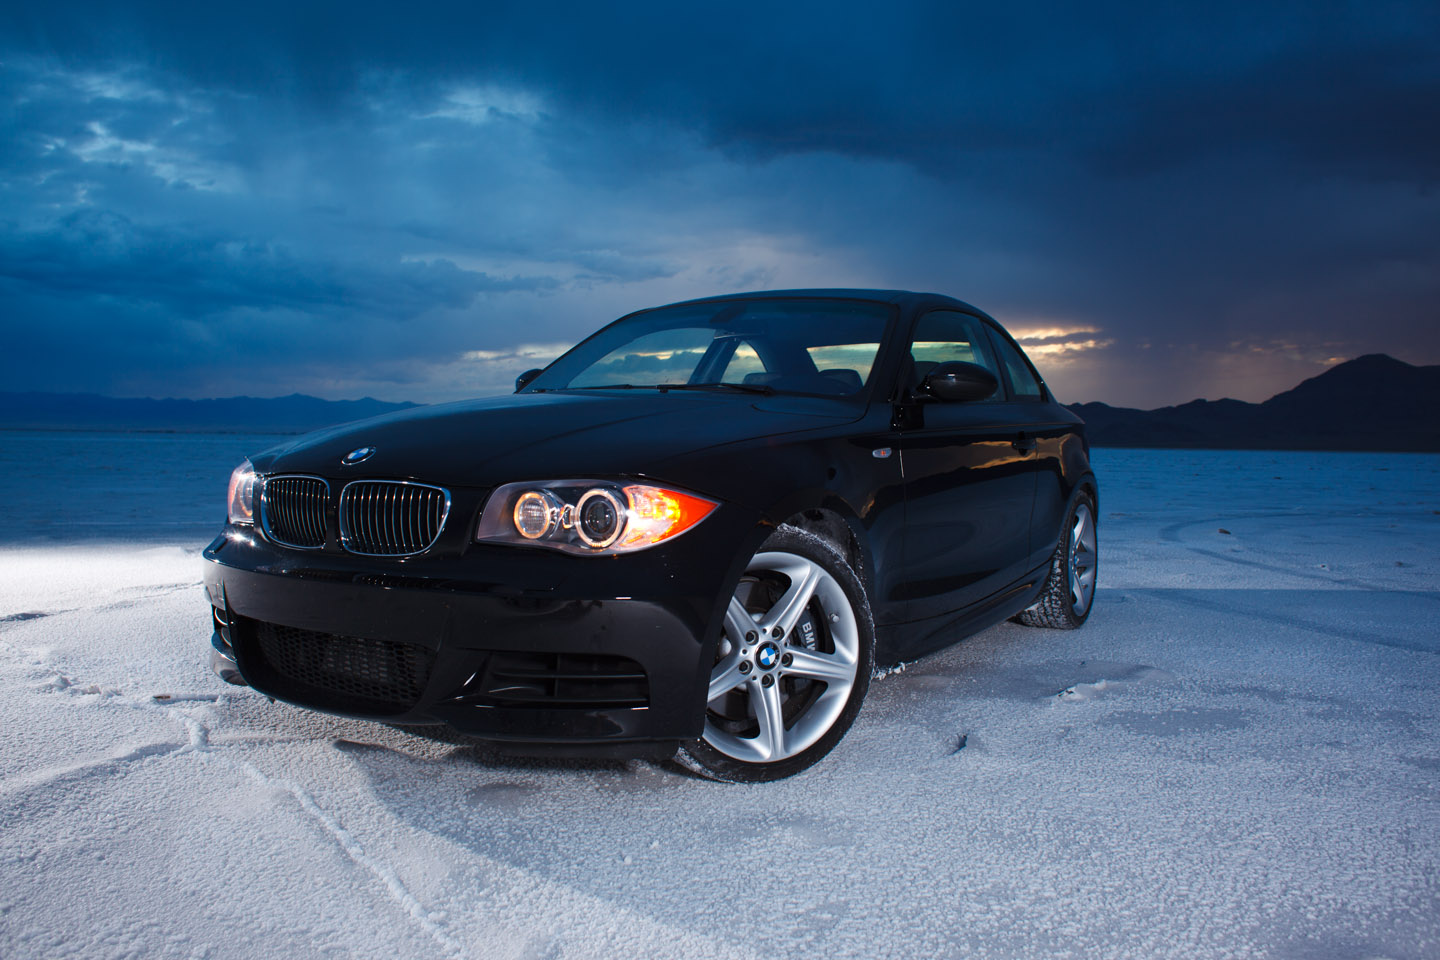 A BMW on the Bonneville Salt Flats